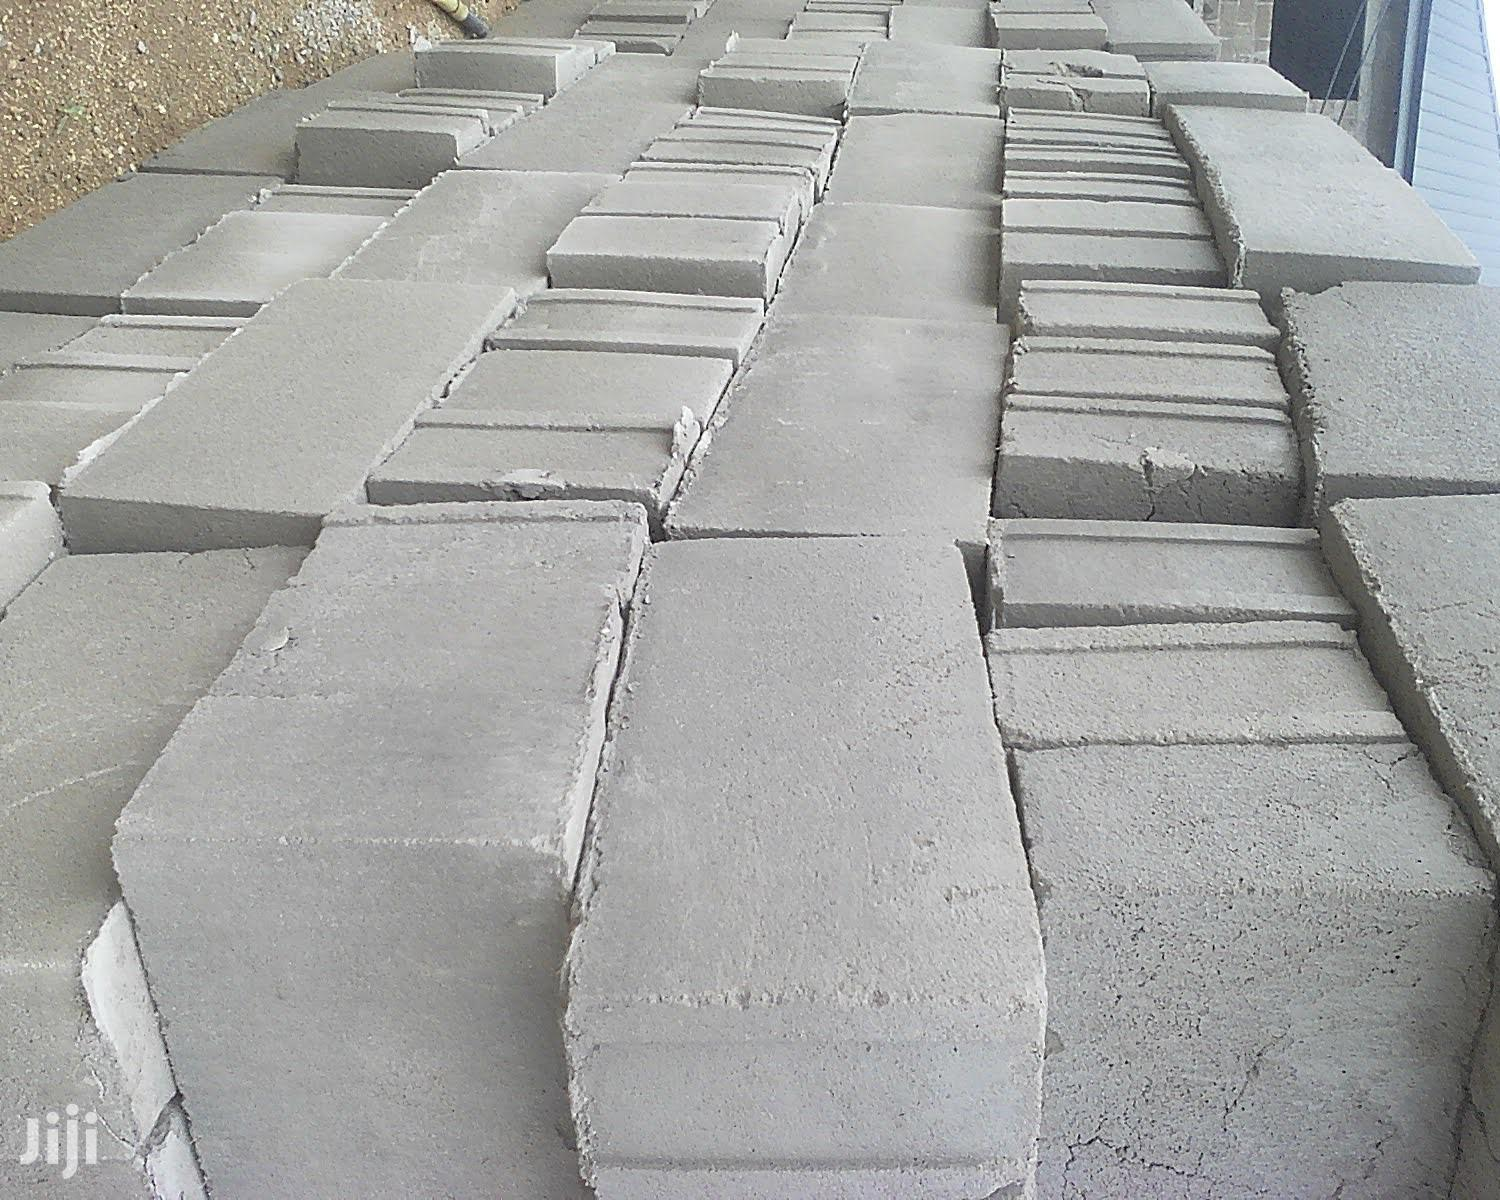 Quality 6 Inches Dust Blocks Gh¢ 3.80 | Building Materials for sale in Ga West Municipal, Greater Accra, Ghana